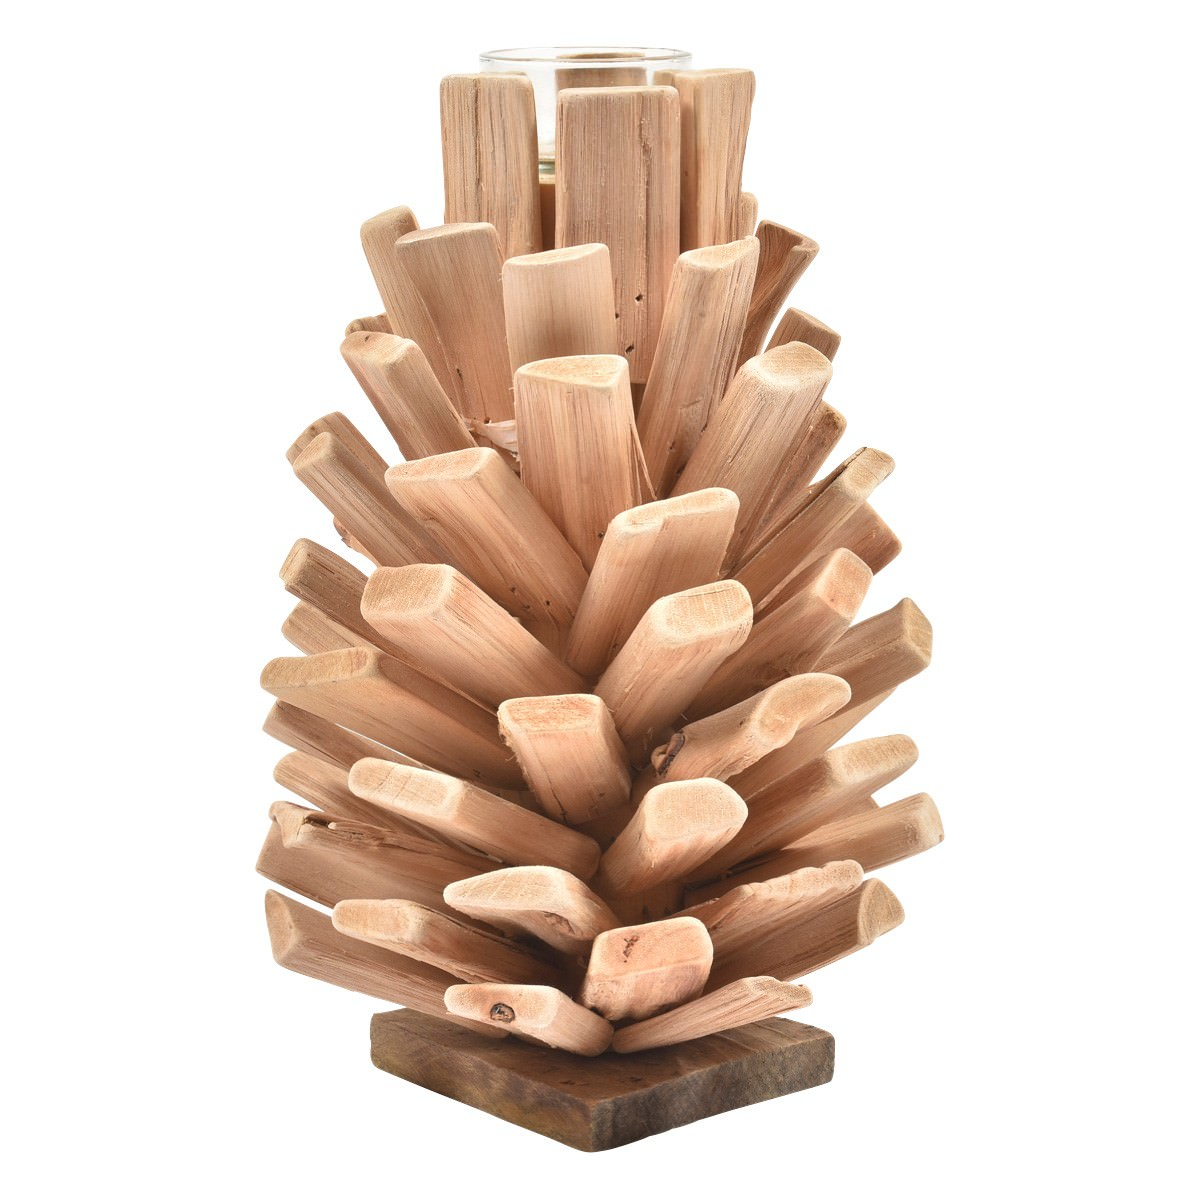 Pacheco Drfitwood Pine Cone Tealight Holder, Large